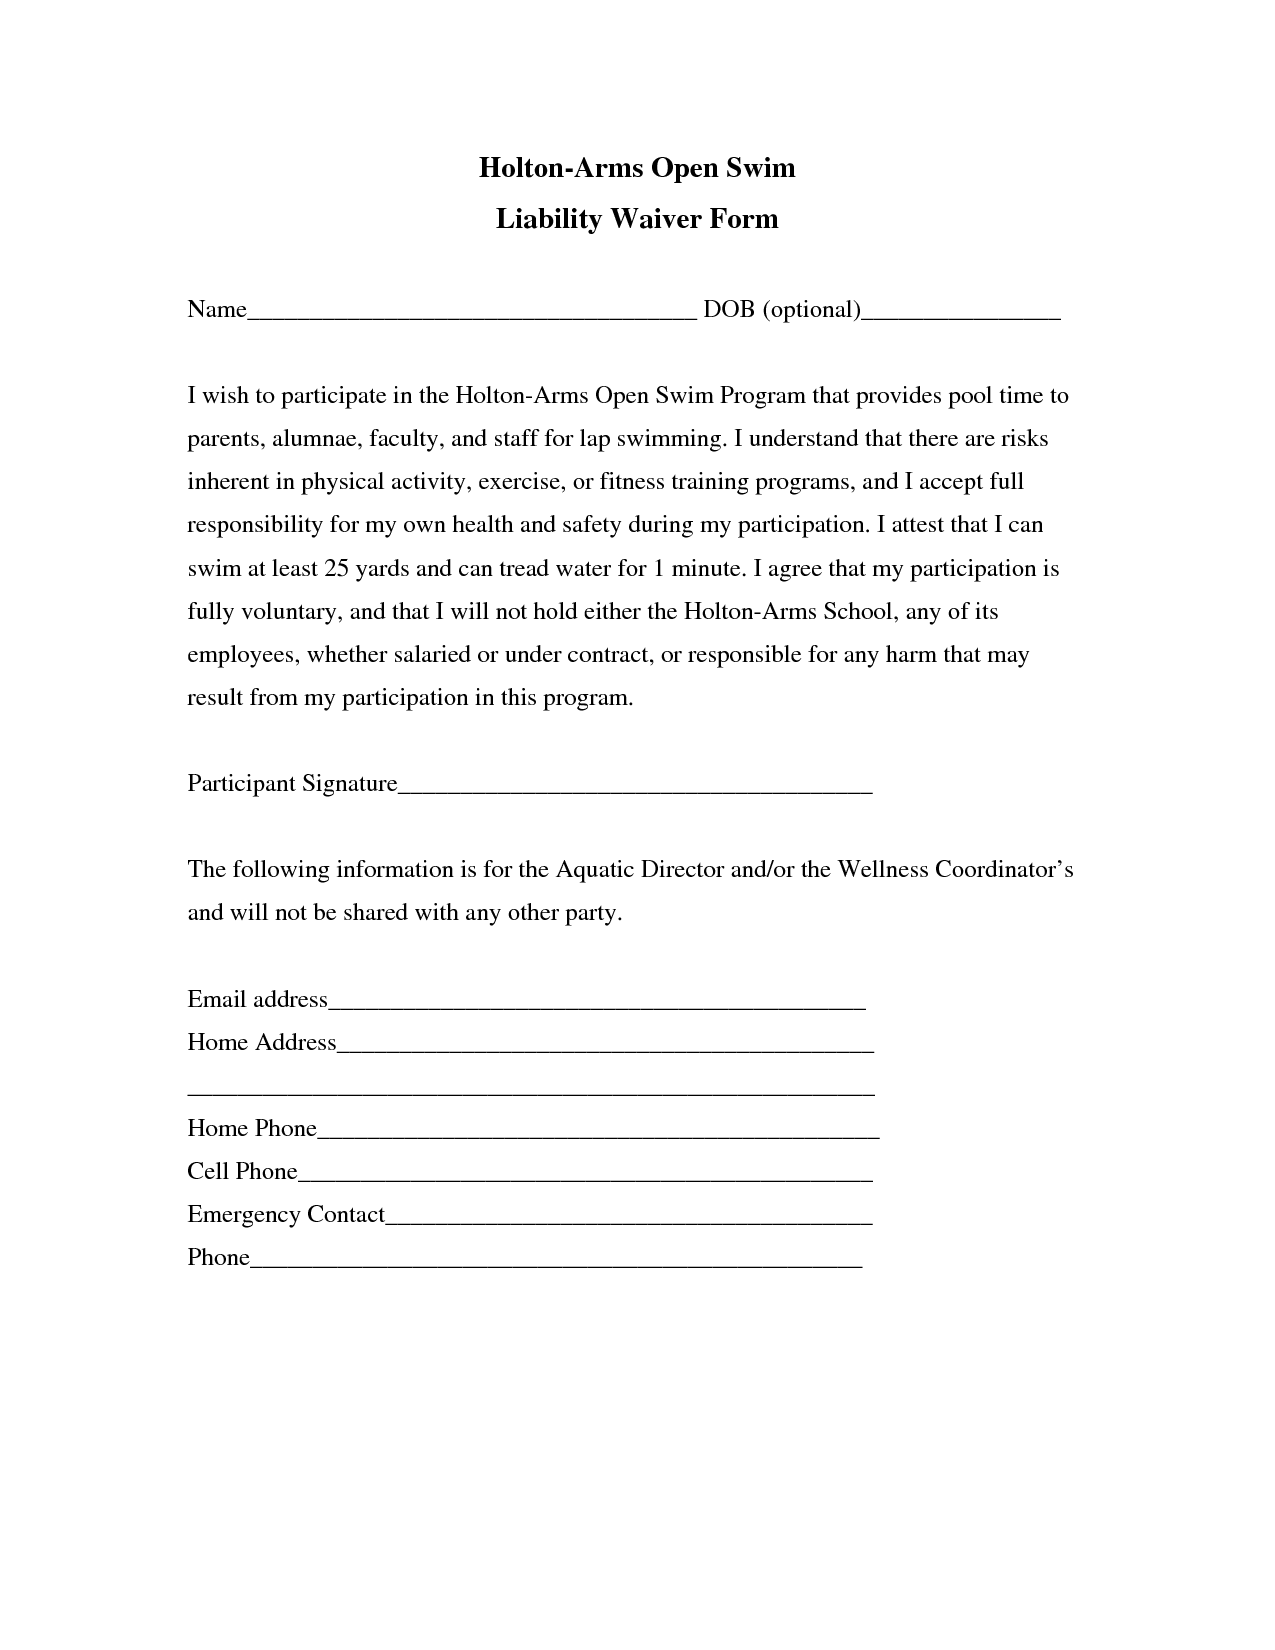 Liability Insurance Liability Insurance Waiver Template – Liability Waiver Form